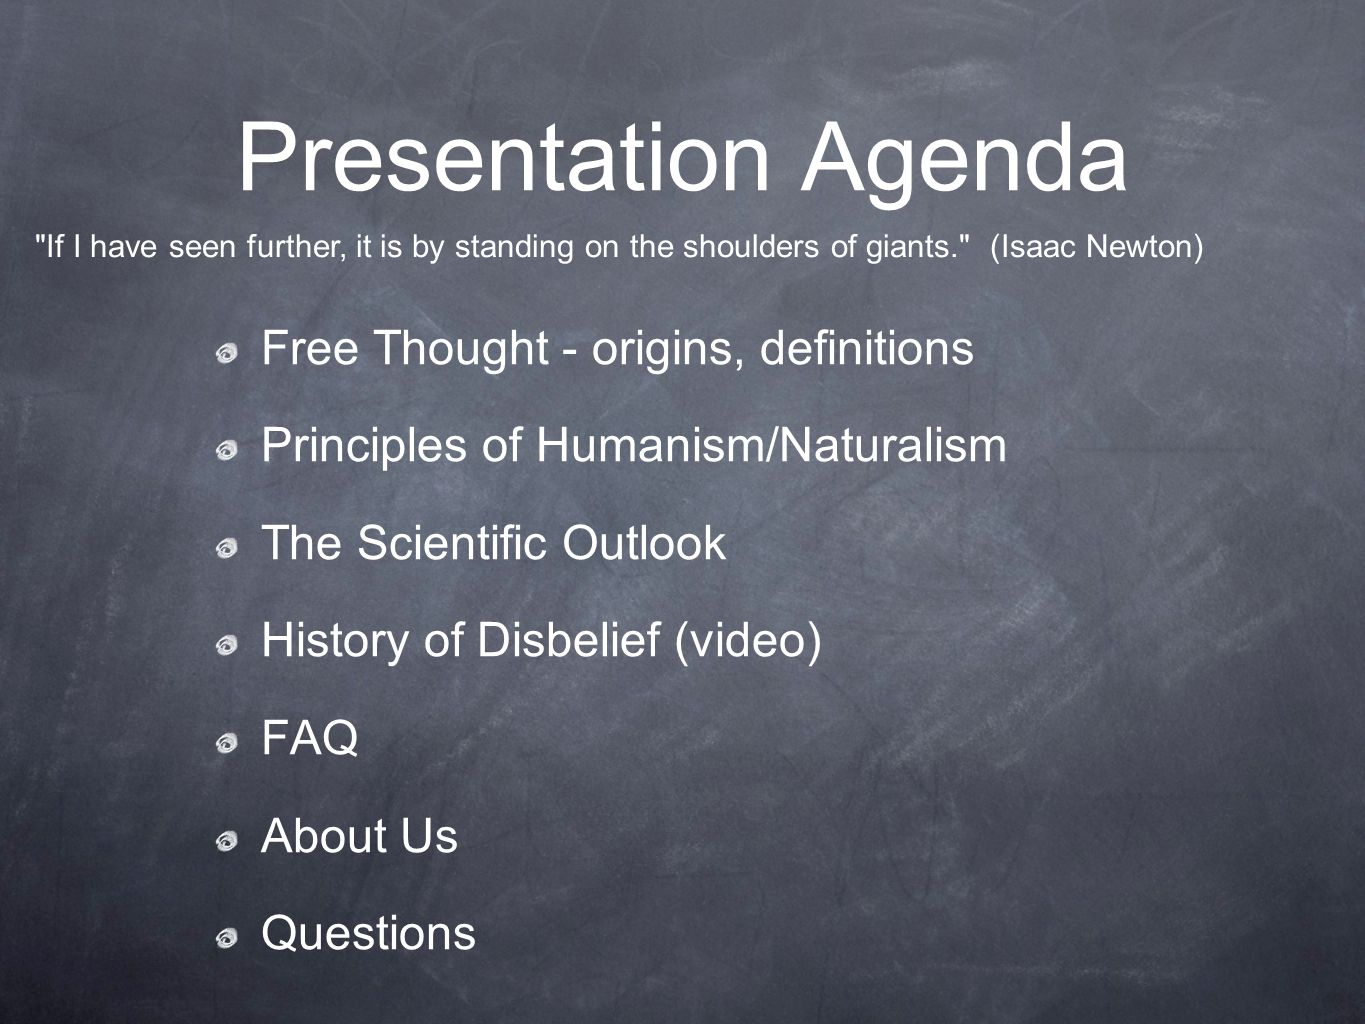 Presentation Agenda Free Thought - origins, definitions Principles of Humanism/Naturalism The Scientific Outlook History of Disbelief (video) FAQ About Us Questions If I have seen further, it is by standing on the shoulders of giants. (Isaac Newton)